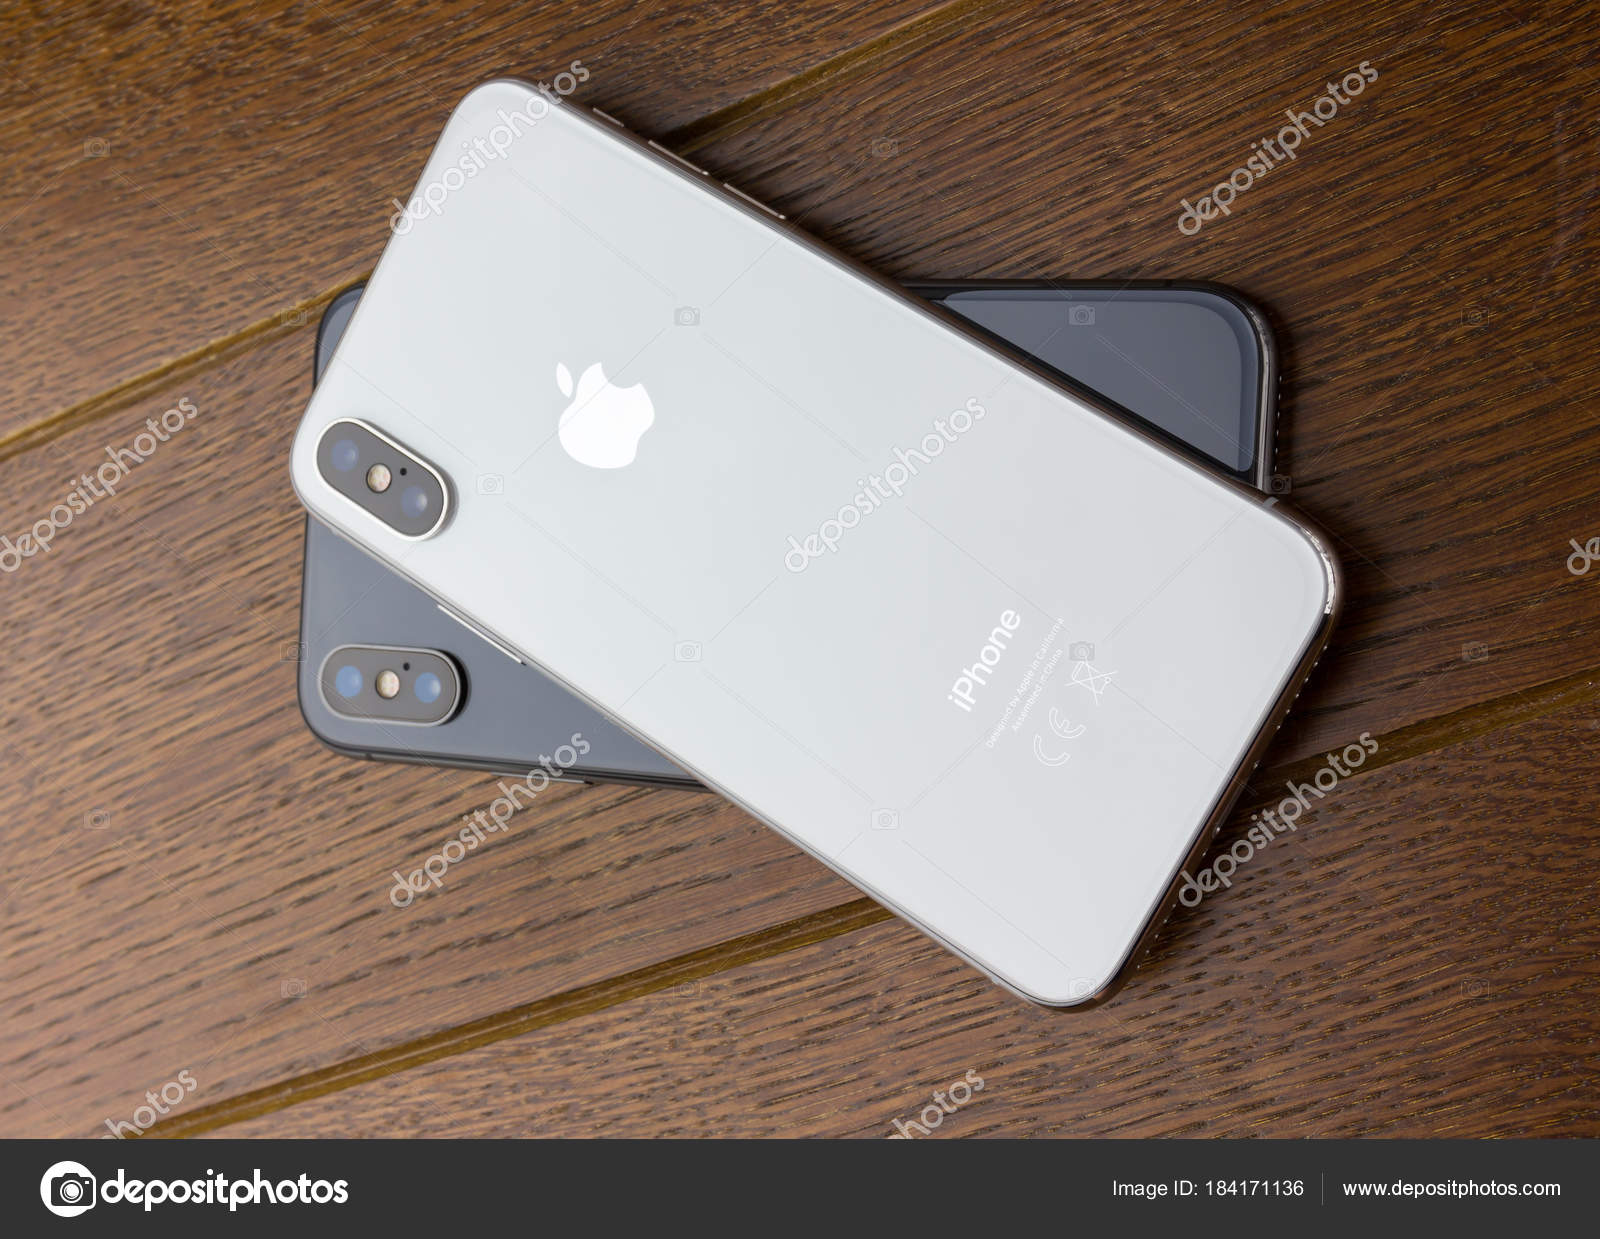 February 2018 Two Iphone X Lies On A Wooden Table Stock Editorial